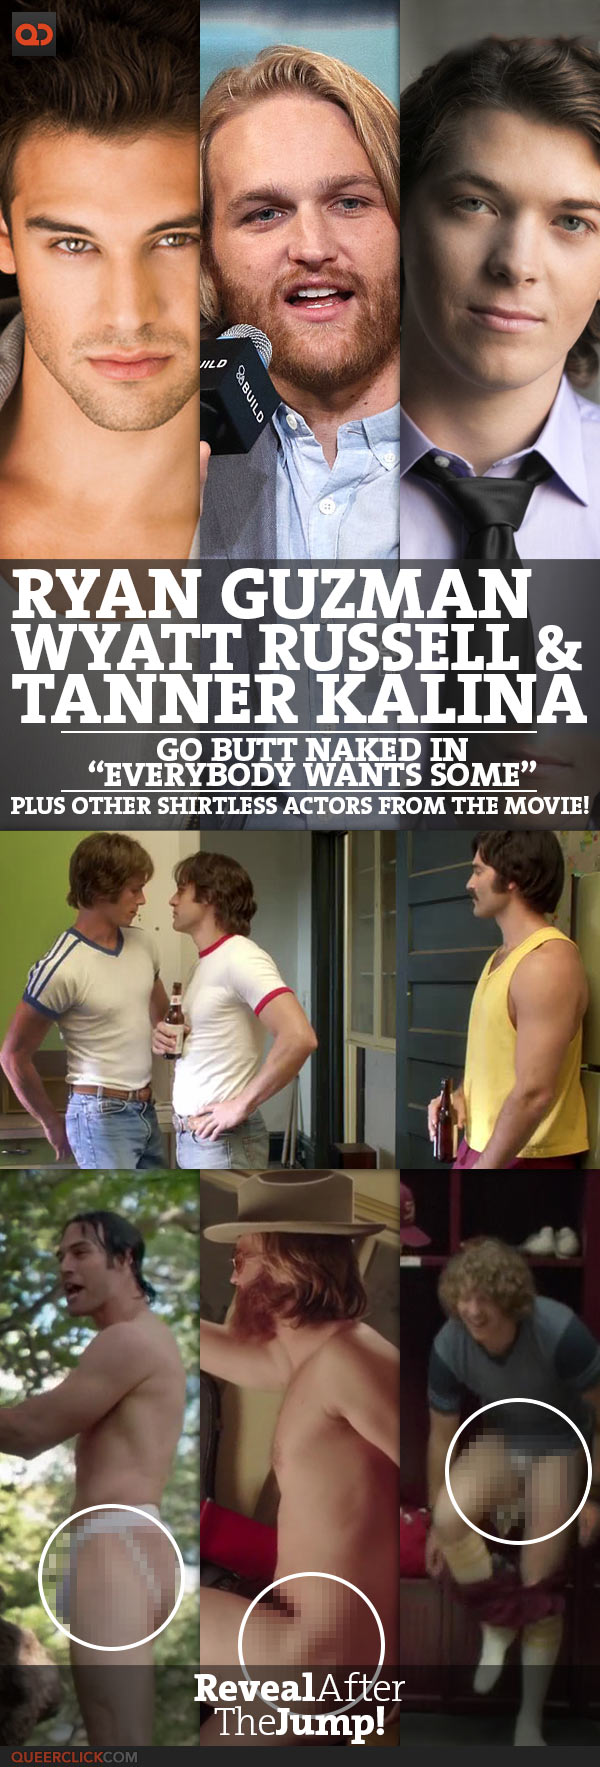 qc-ryan_guzman_wyatt_russell_and-tanner_kalina-go-butt_naked_in-everybody_wants_some-teaser